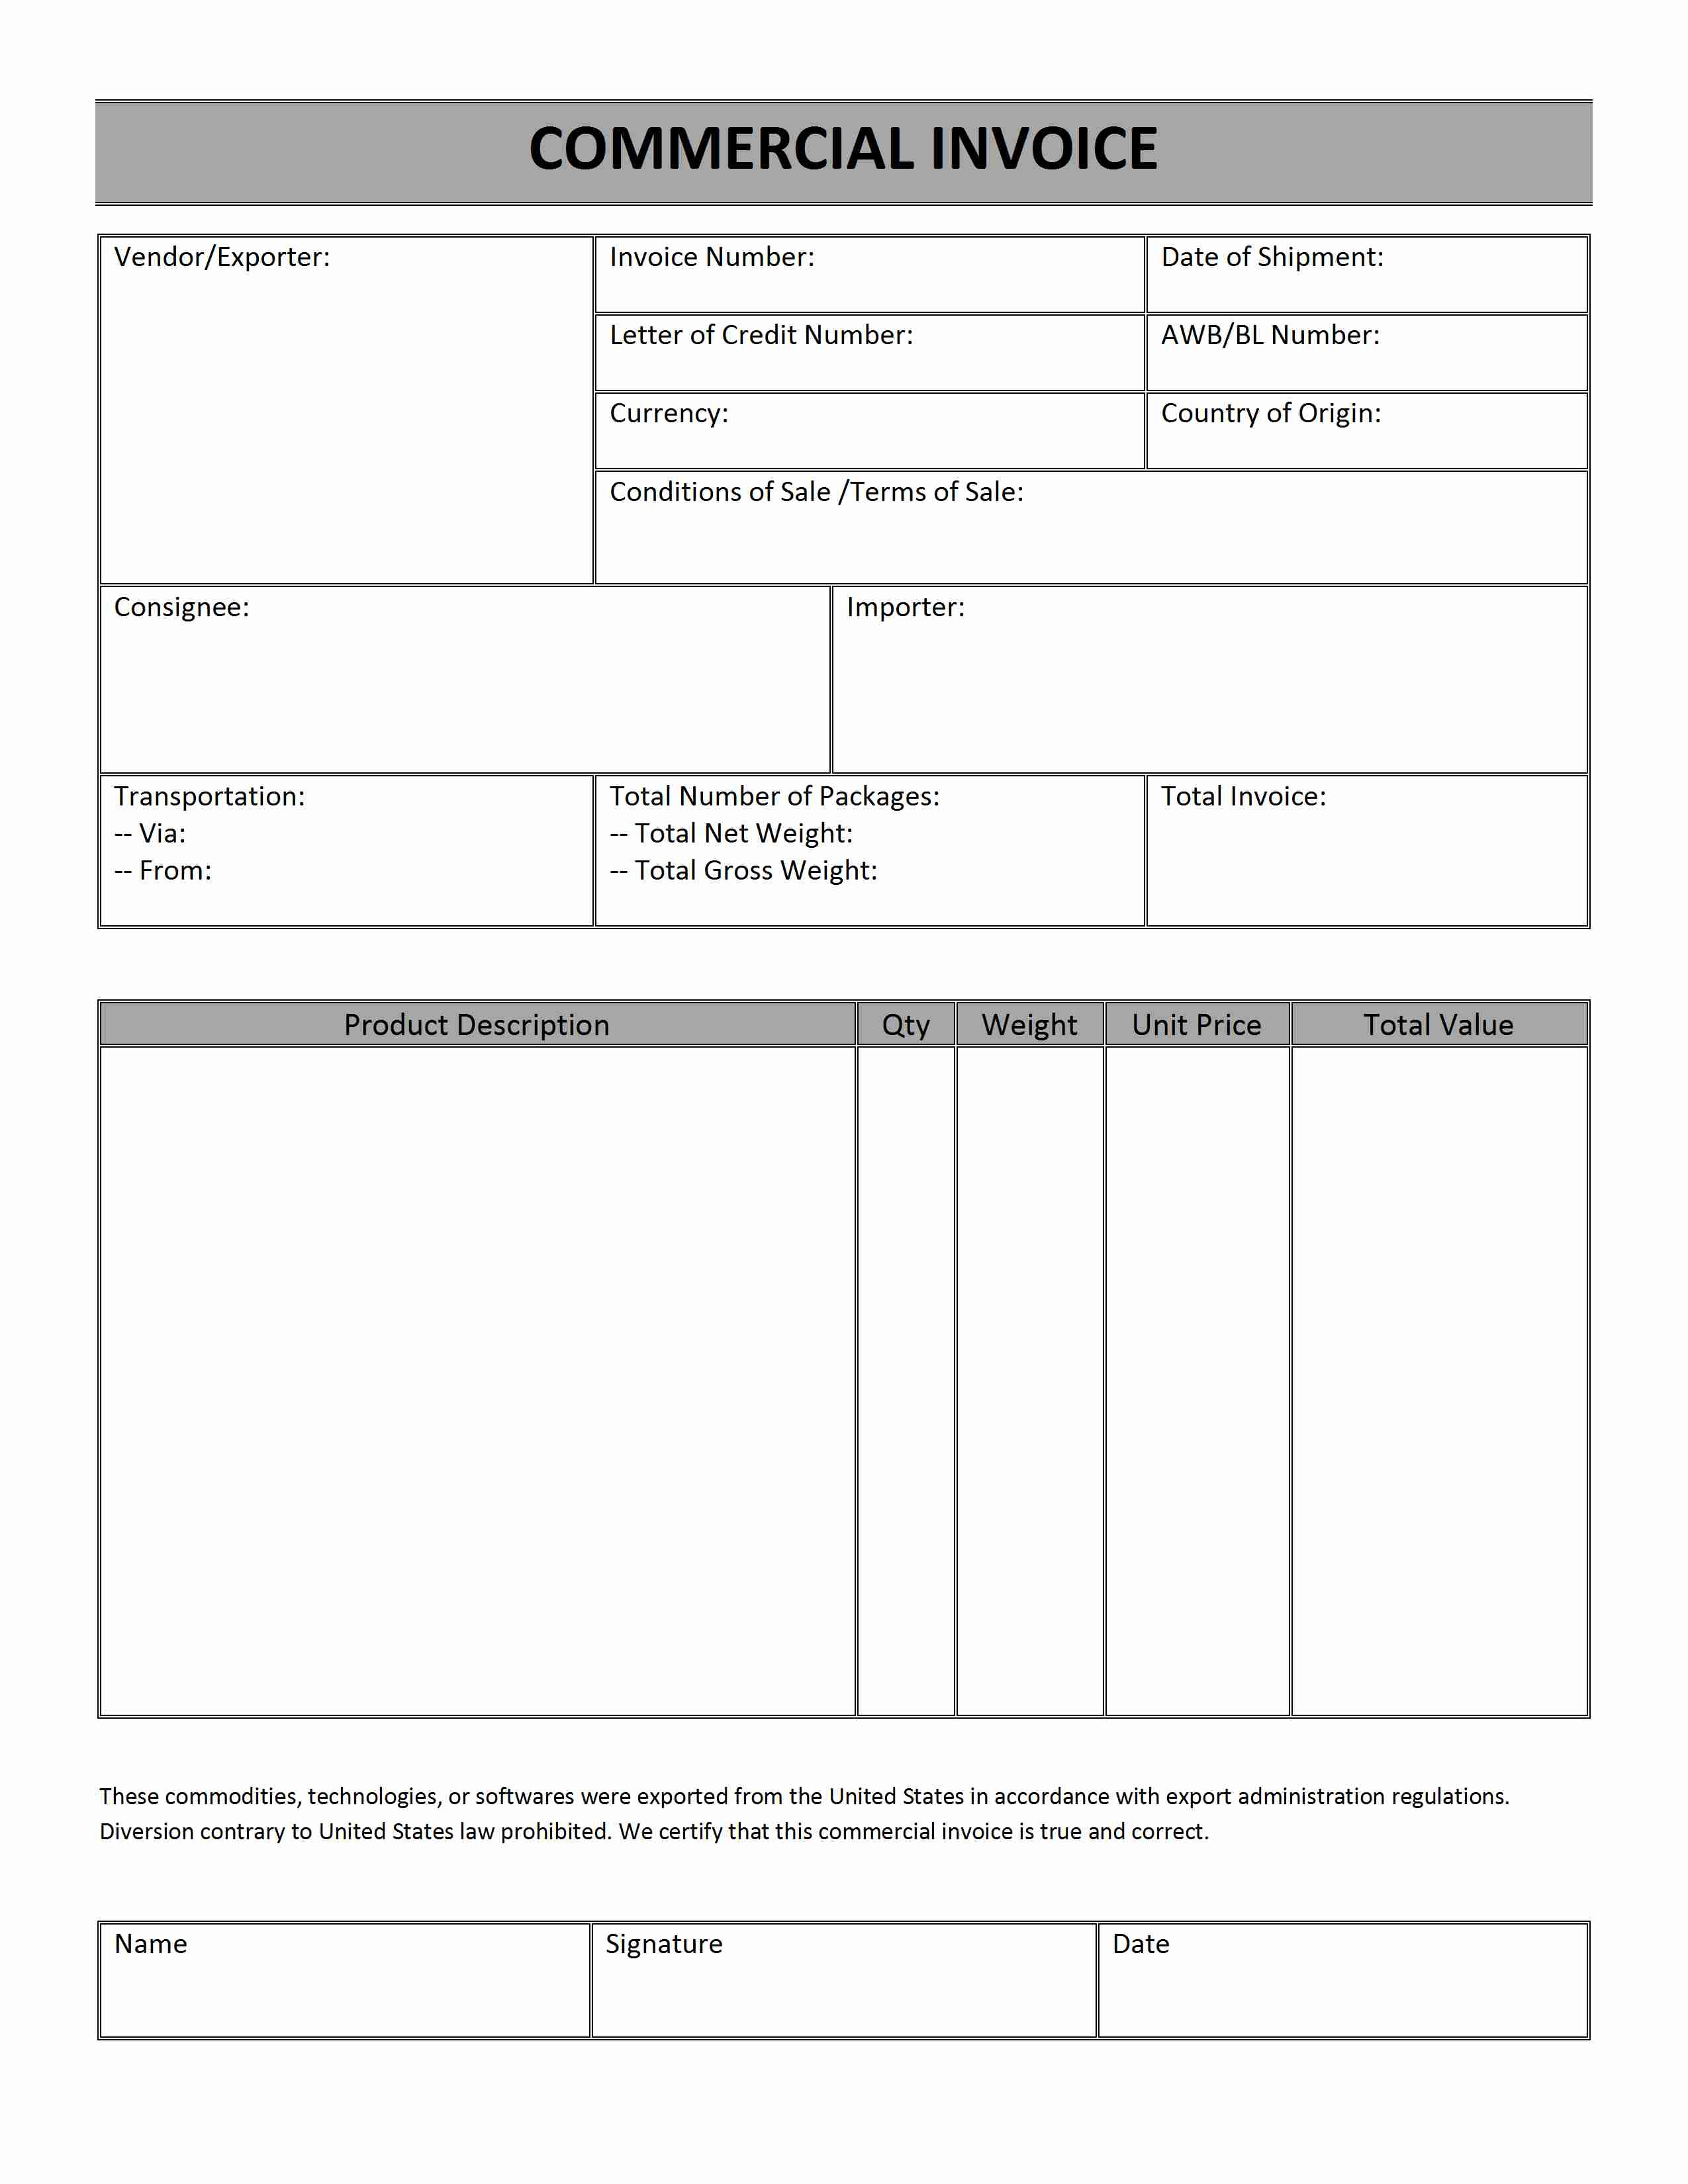 Patriotexpressus  Surprising Printable Sales Invoice Simple Invoice Form Free Invoice  With Hot Printable Receipt Free  Free Printable Raffle Tickets  Receipt   Printable With Comely Rent Receipt Word Template Also Bny Mellon Depositary Receipts In Addition How To Create Receipts And Budgeted Cash Receipts Formula As Well As Receipt Maker Machine Additionally Loan Receipt Template From Happytomco With Patriotexpressus  Hot Printable Sales Invoice Simple Invoice Form Free Invoice  With Comely Printable Receipt Free  Free Printable Raffle Tickets  Receipt   Printable And Surprising Rent Receipt Word Template Also Bny Mellon Depositary Receipts In Addition How To Create Receipts From Happytomco